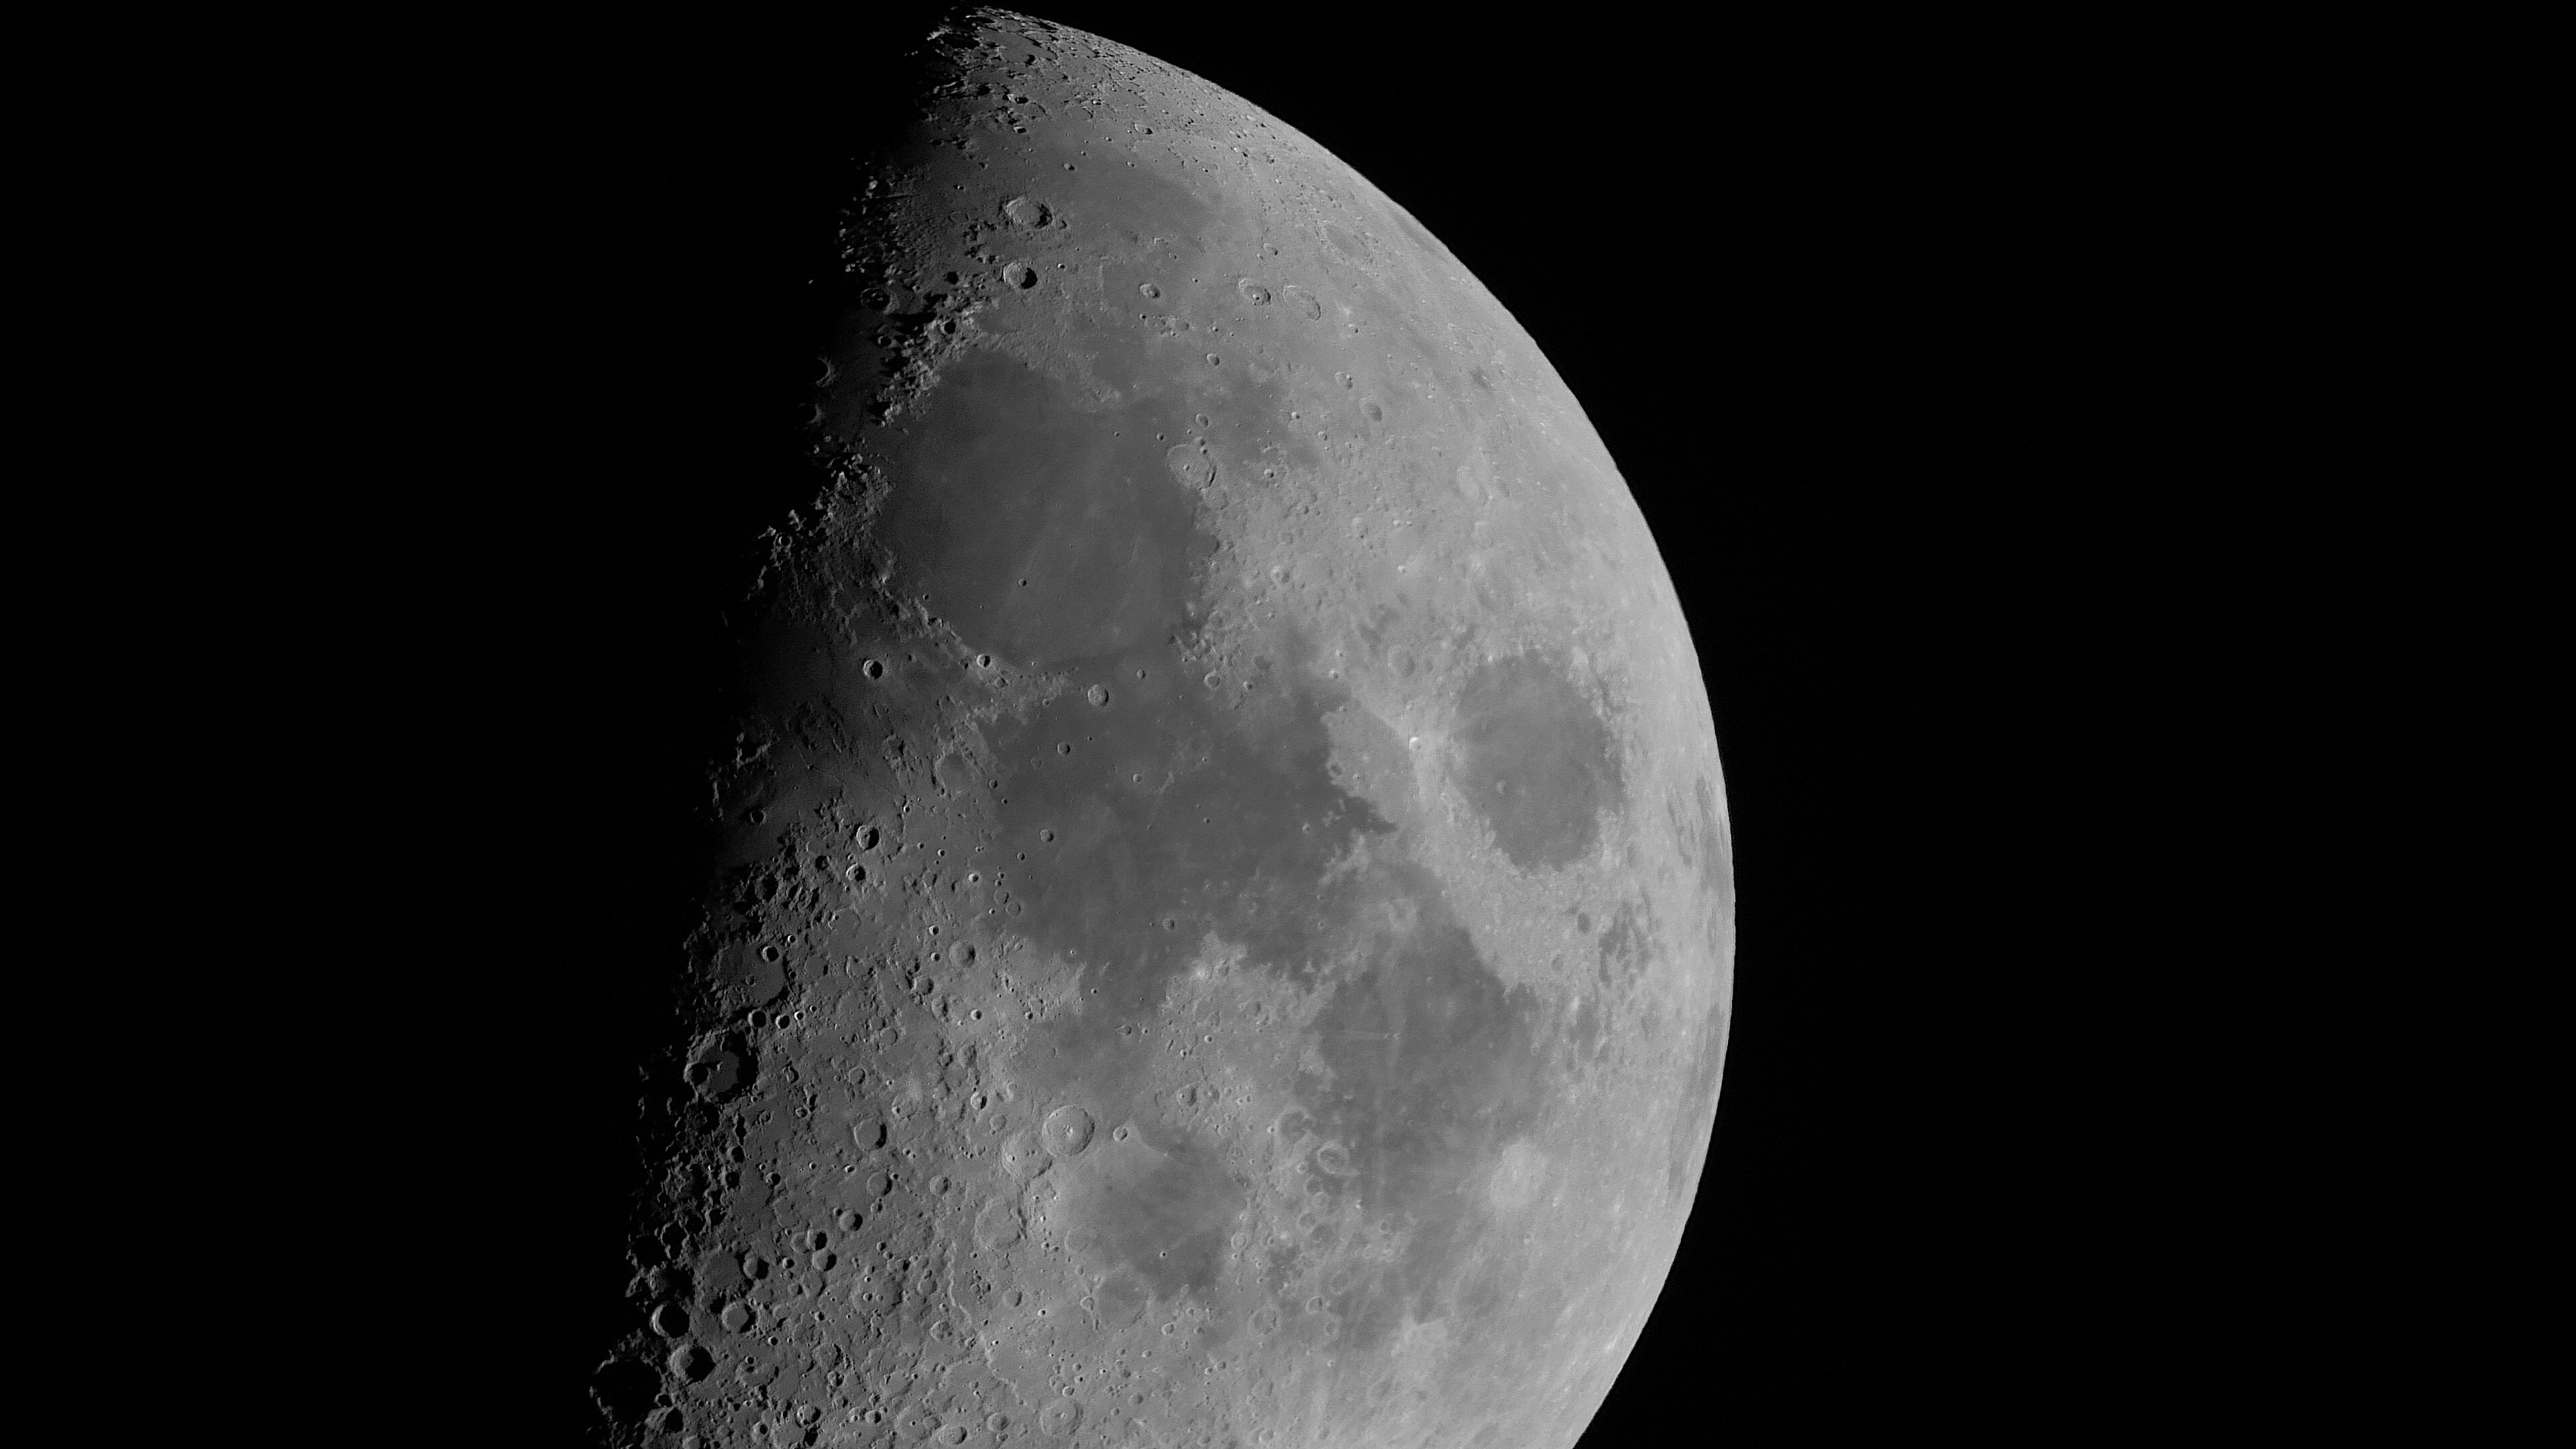 GH5 GH5 4K 60p with 1480mm F6 3 C9 25 of the moon